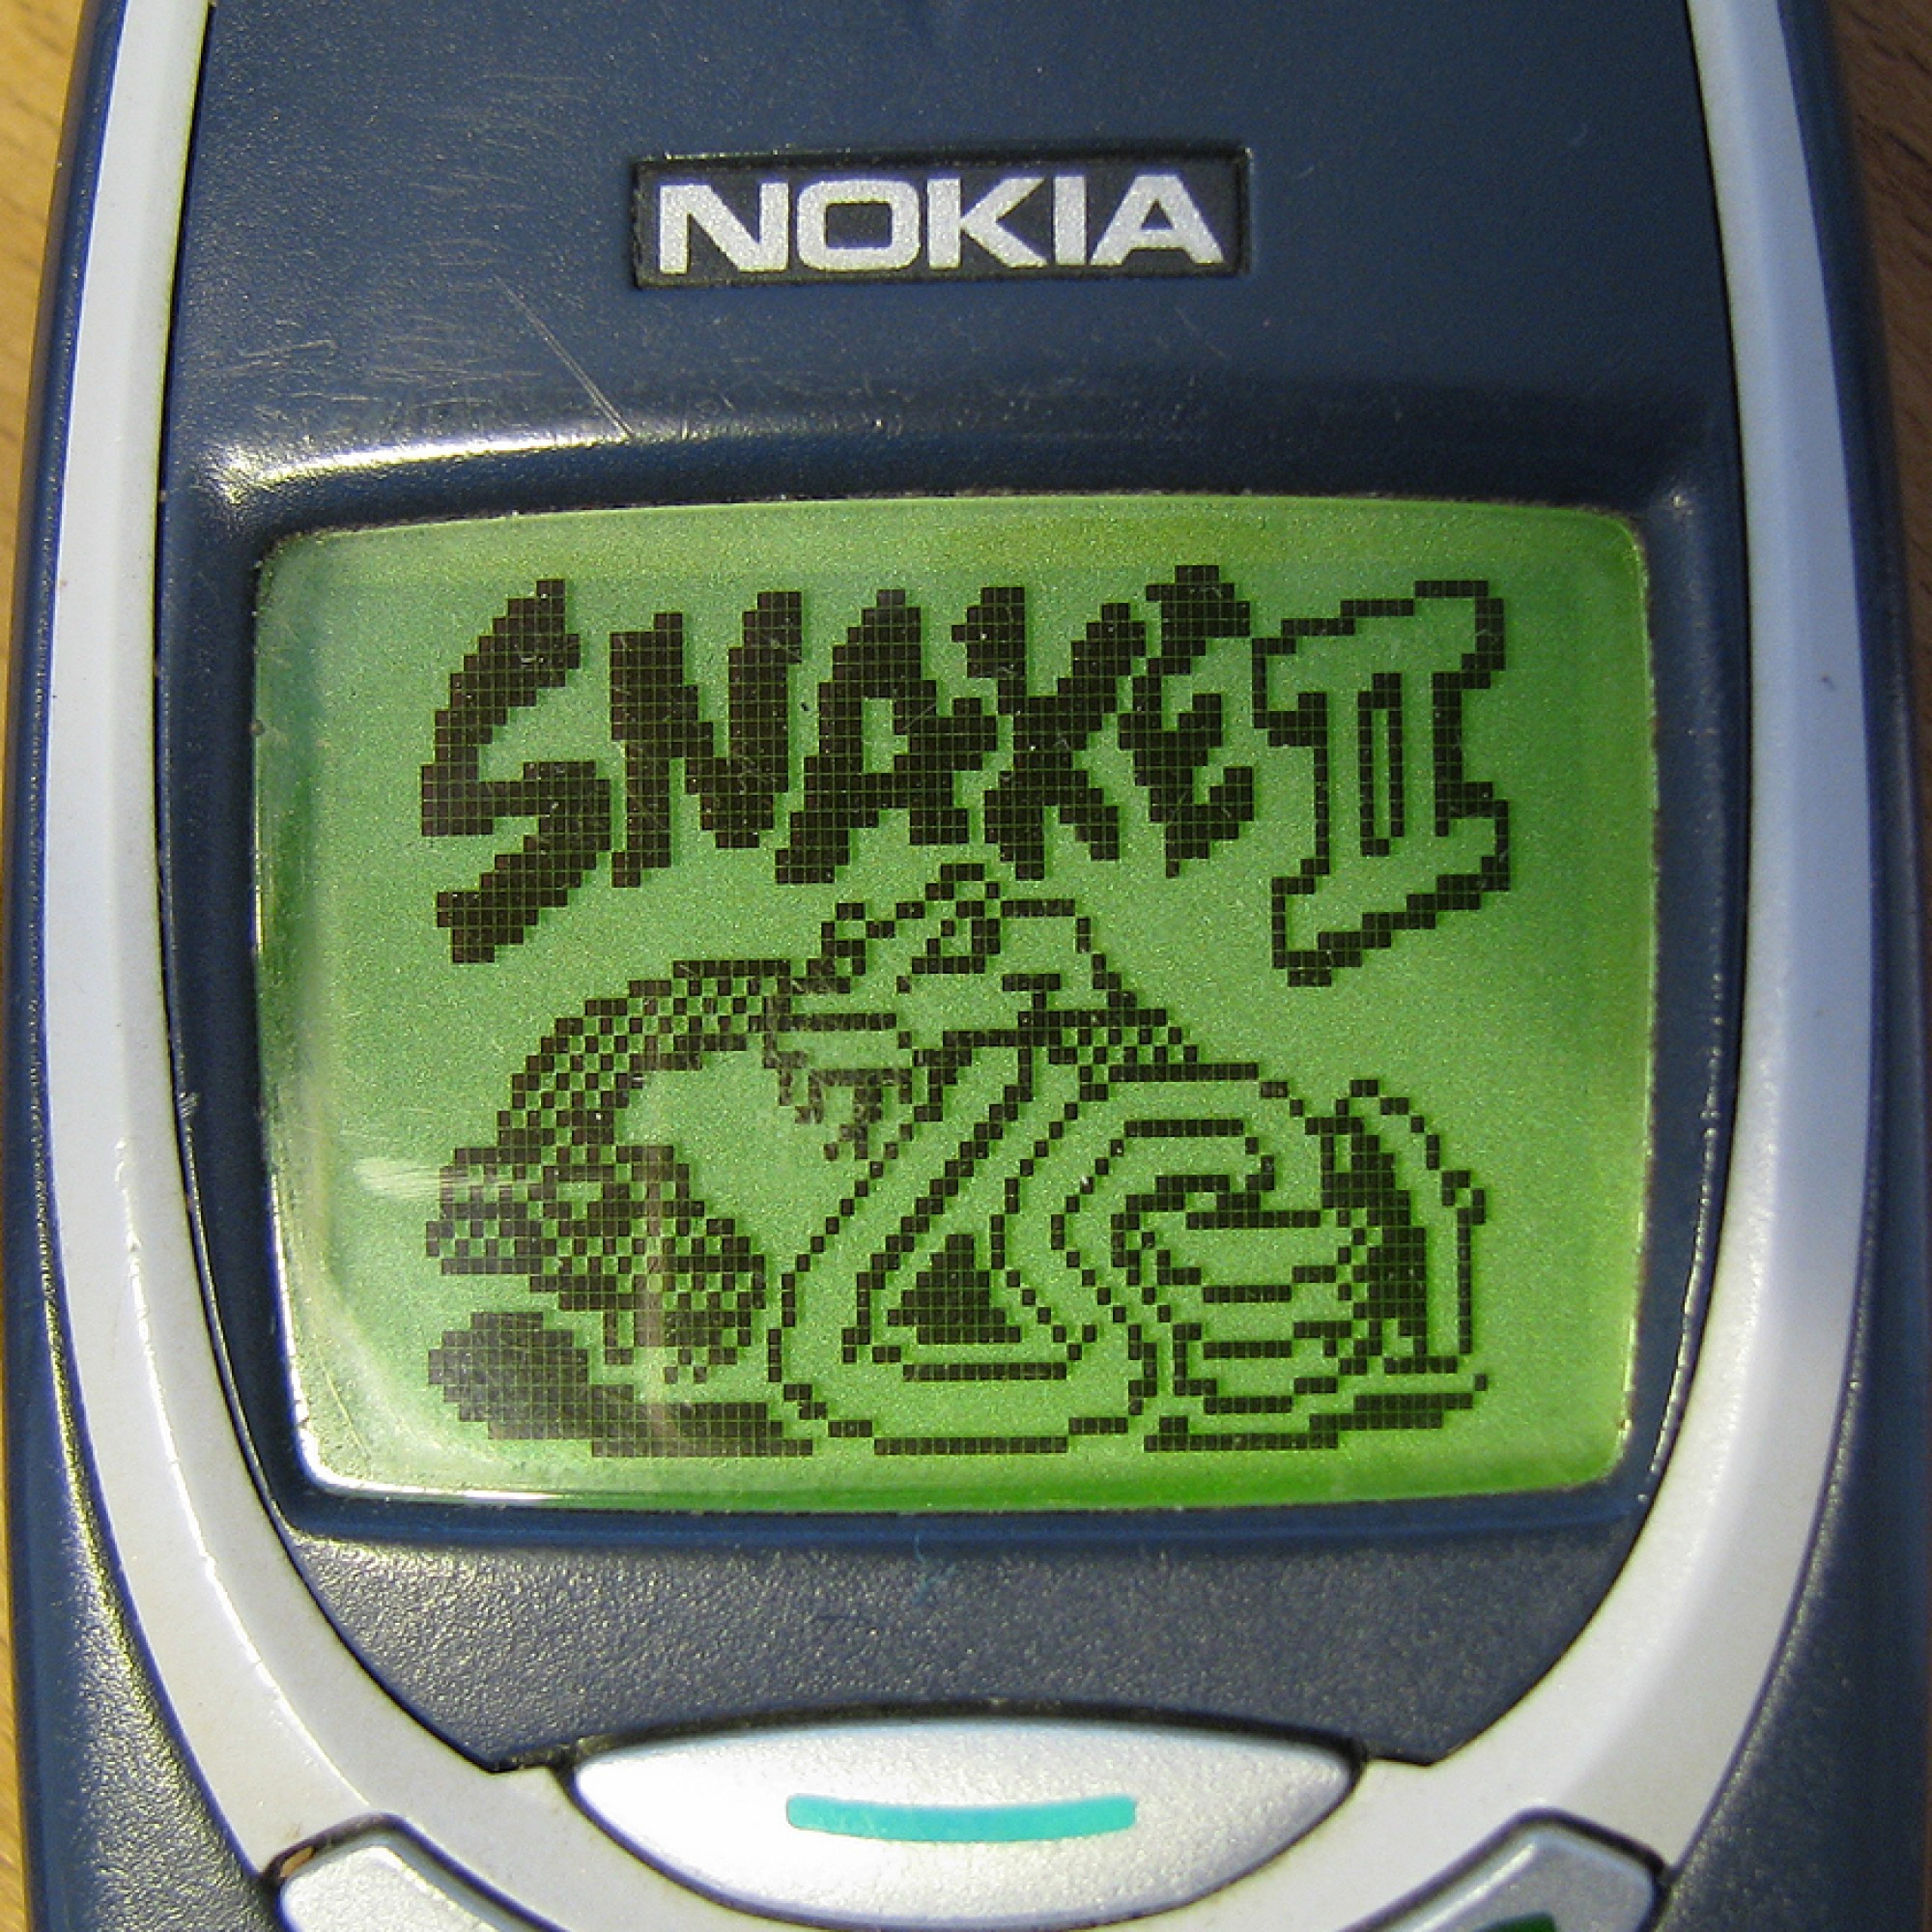 15 memories of early mobile phones kids today will never understand